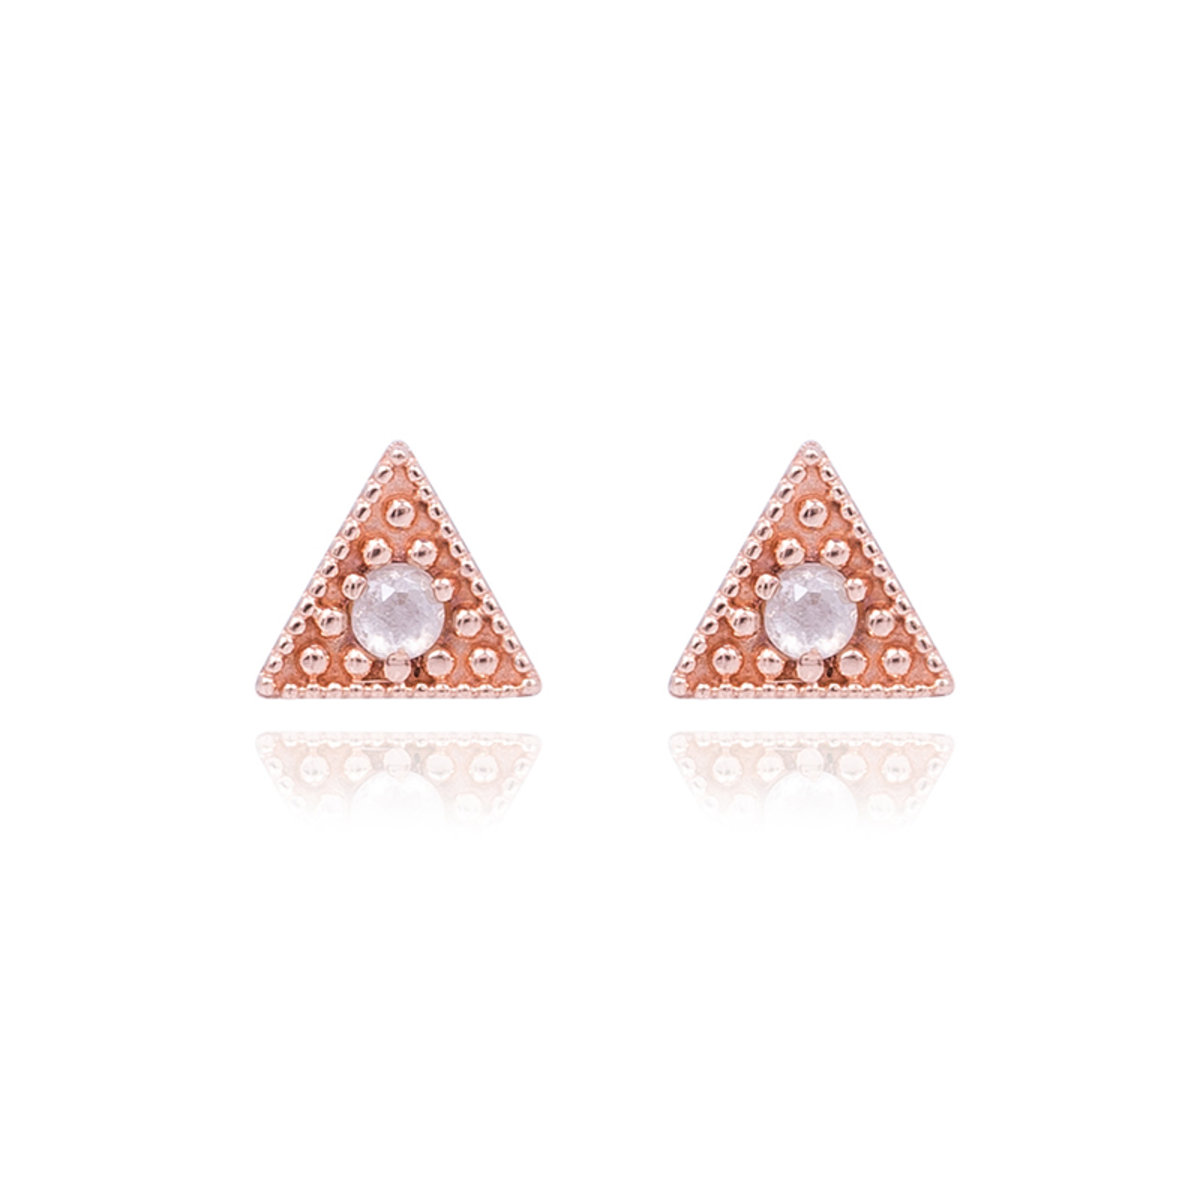 14K/585 Triangle Gray Ruf Diamond Stud Earrings